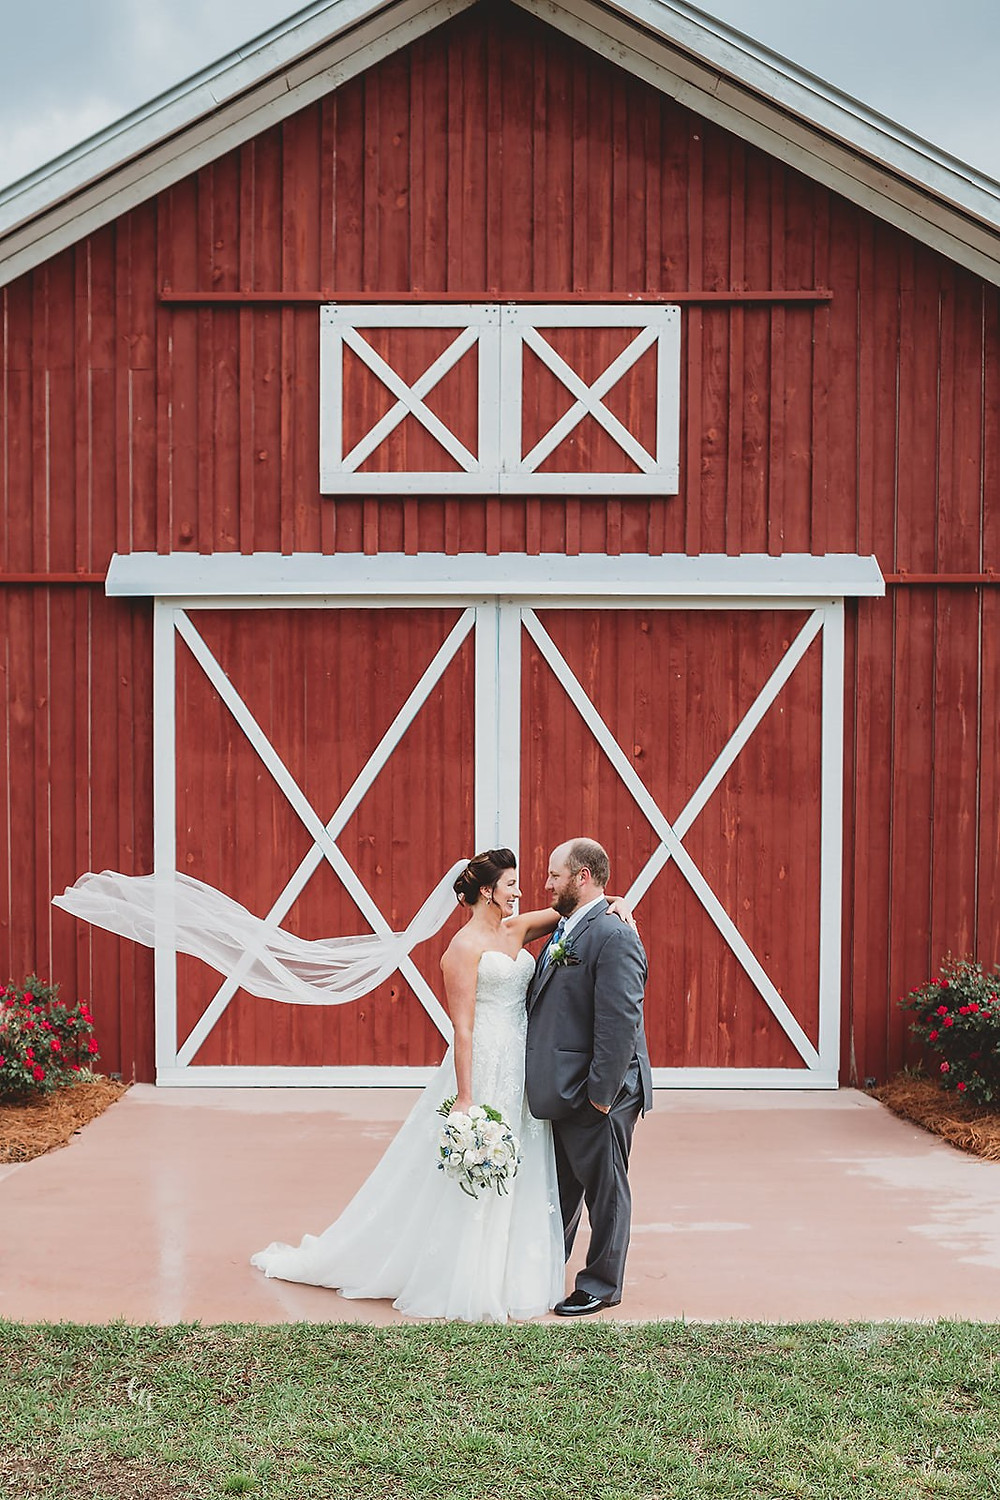 Danielle+Matt at Barn